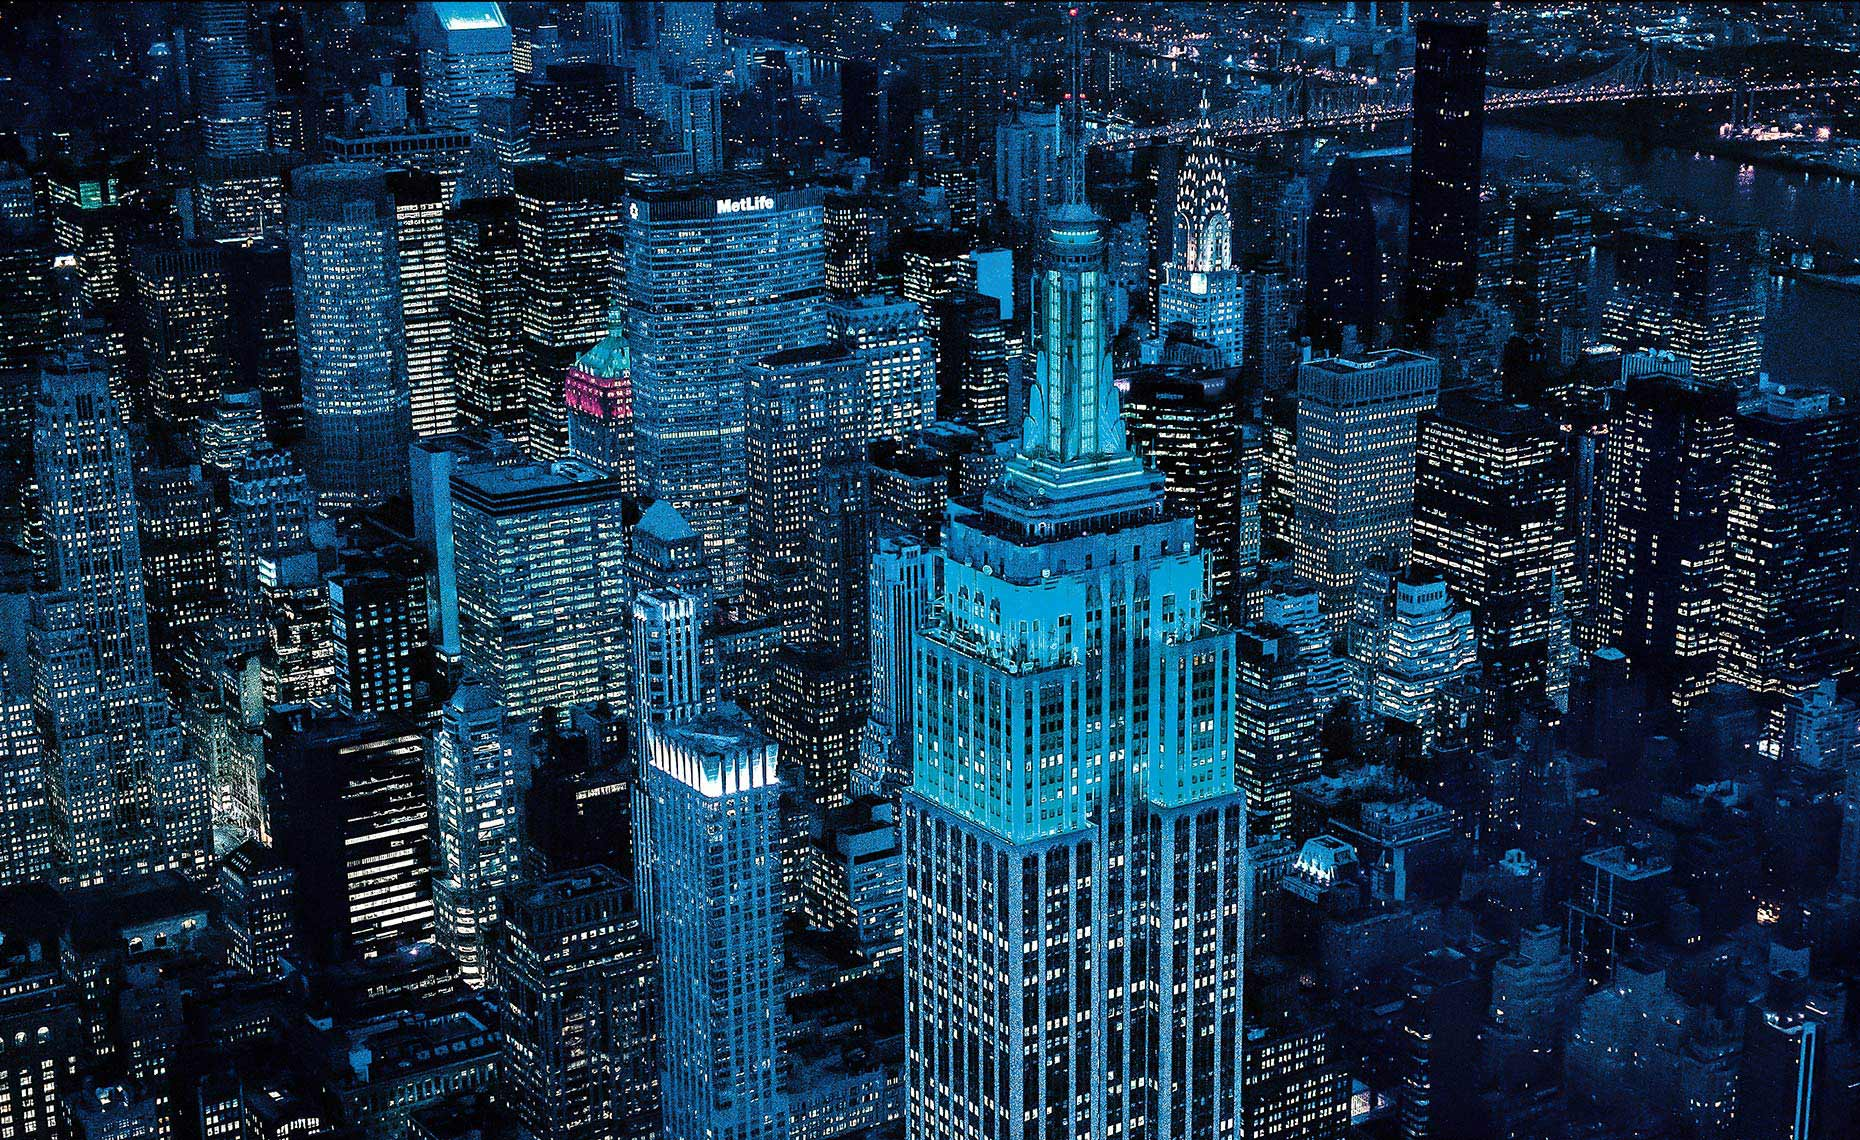 Aerial Photo Midtown At Night, New York City